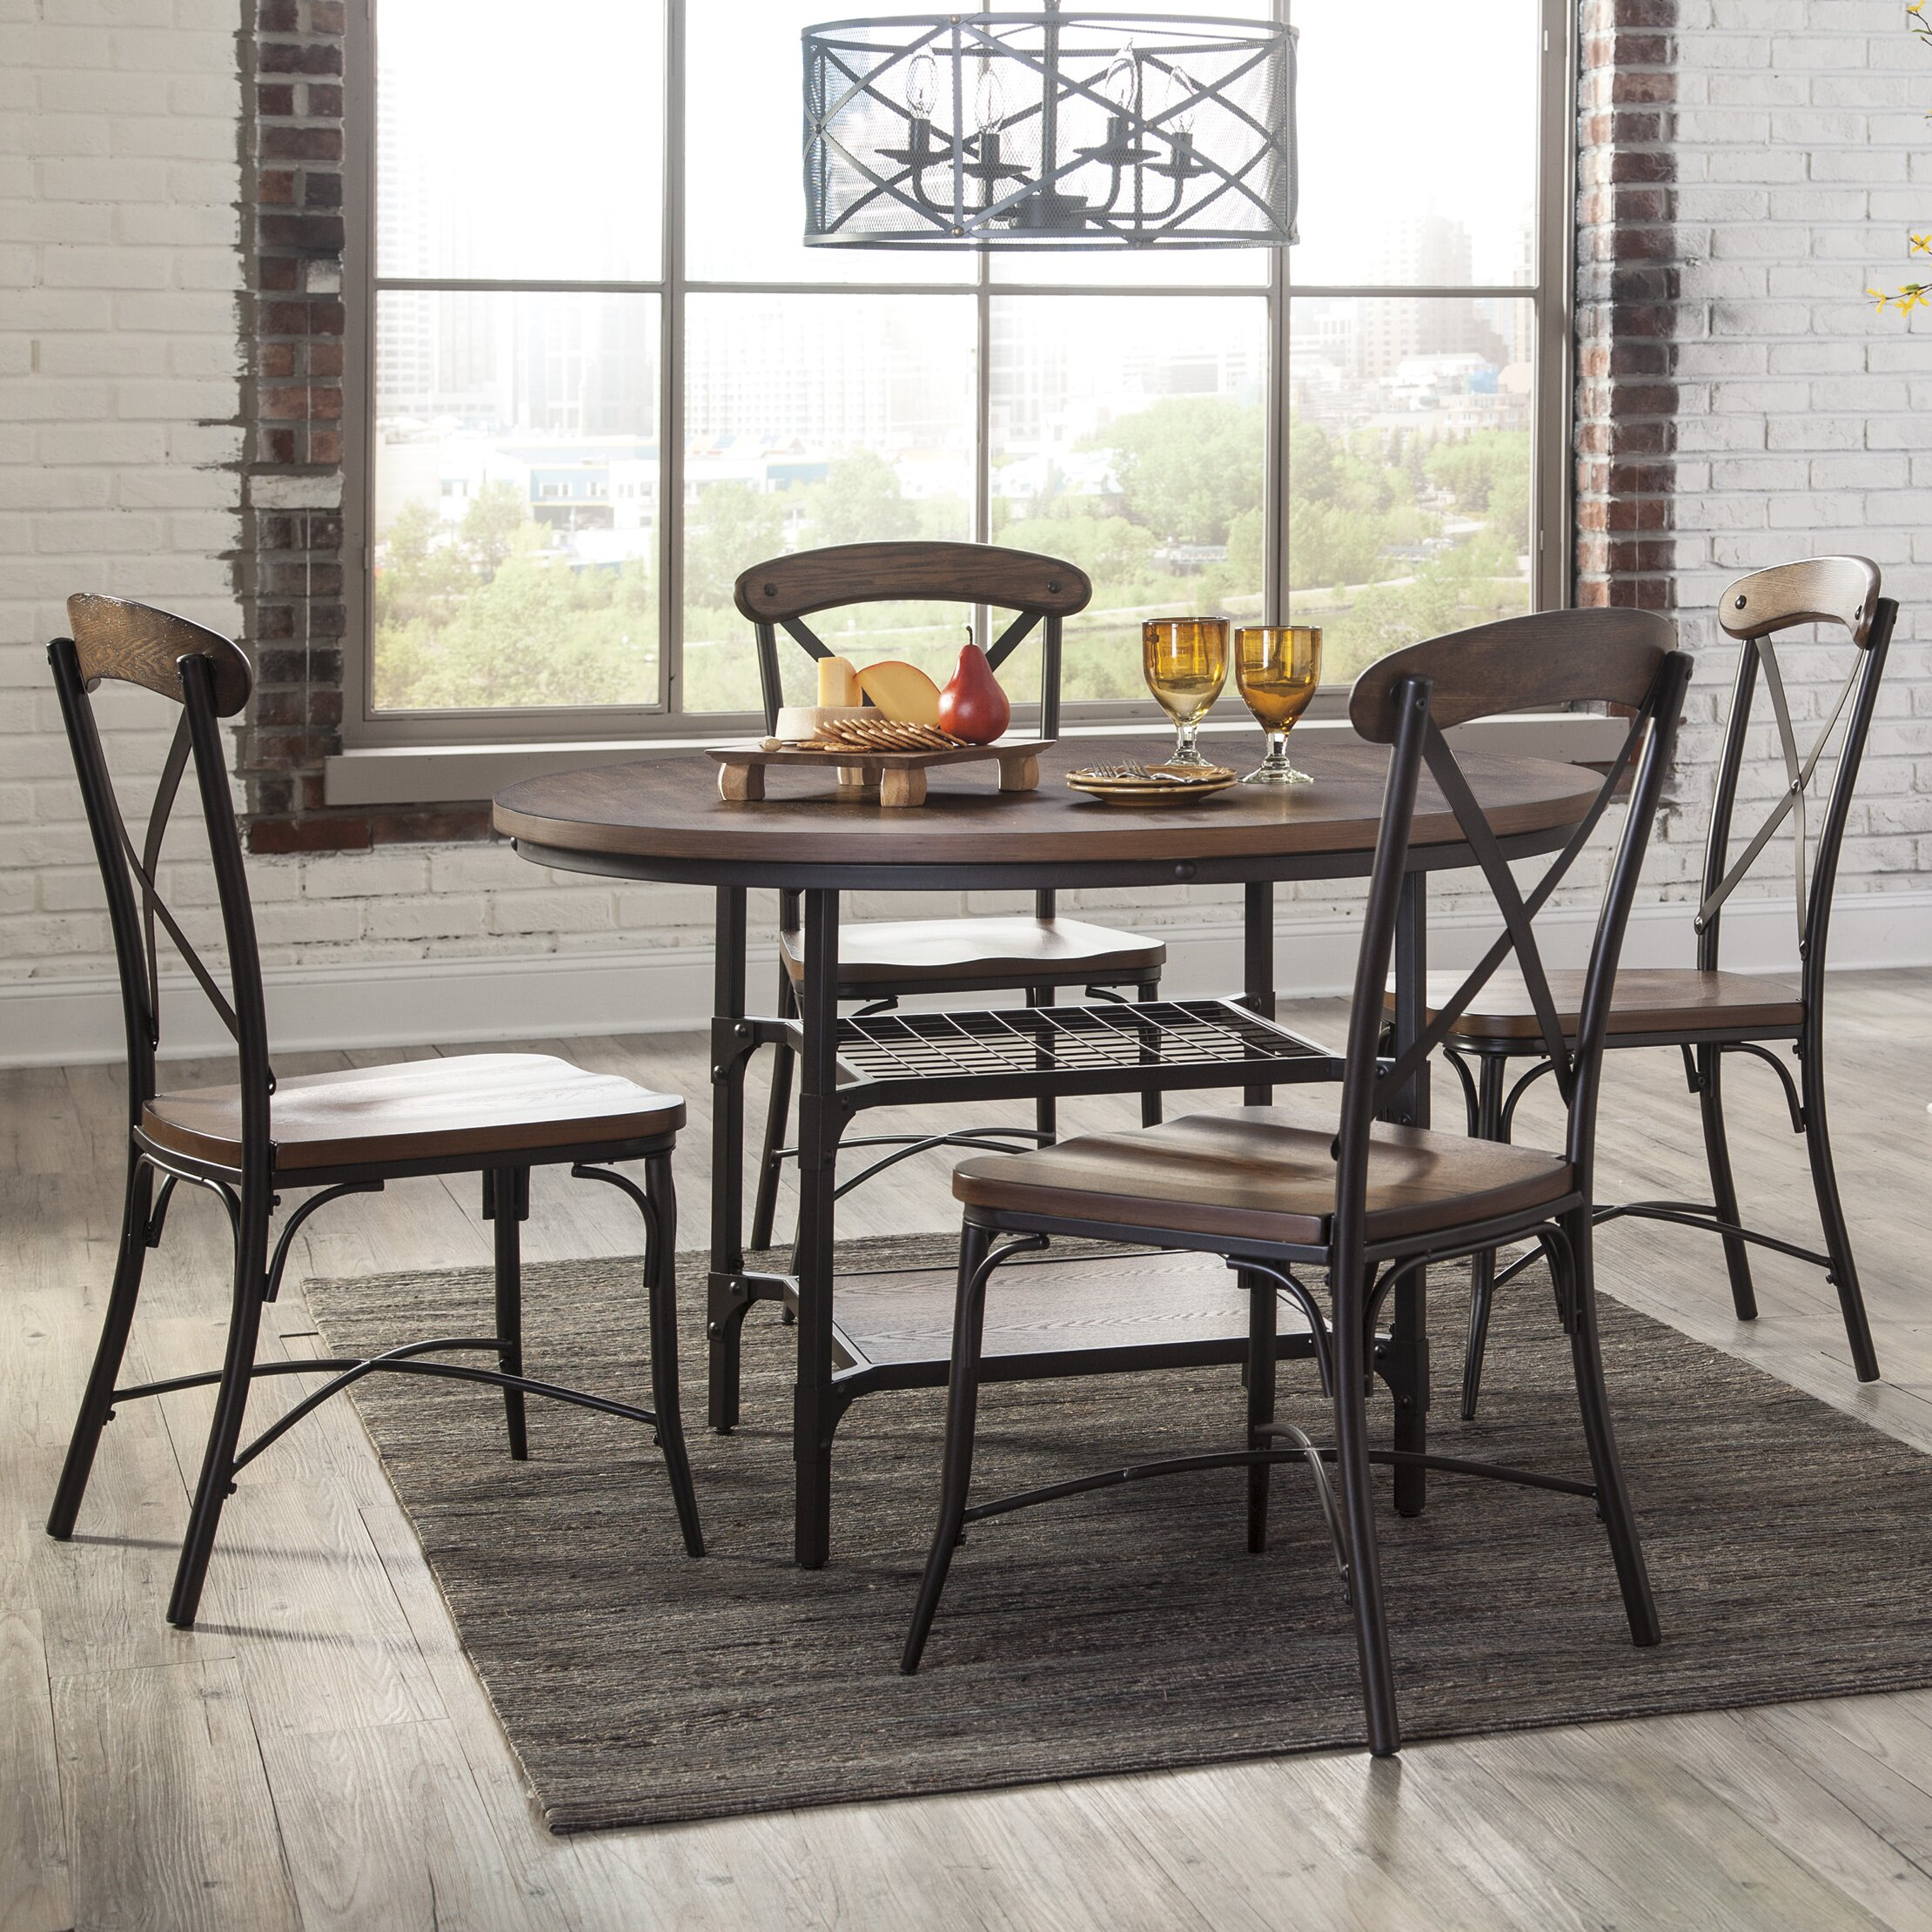 Signature design by ashley dining table reviews wayfair for Wayfair dining table